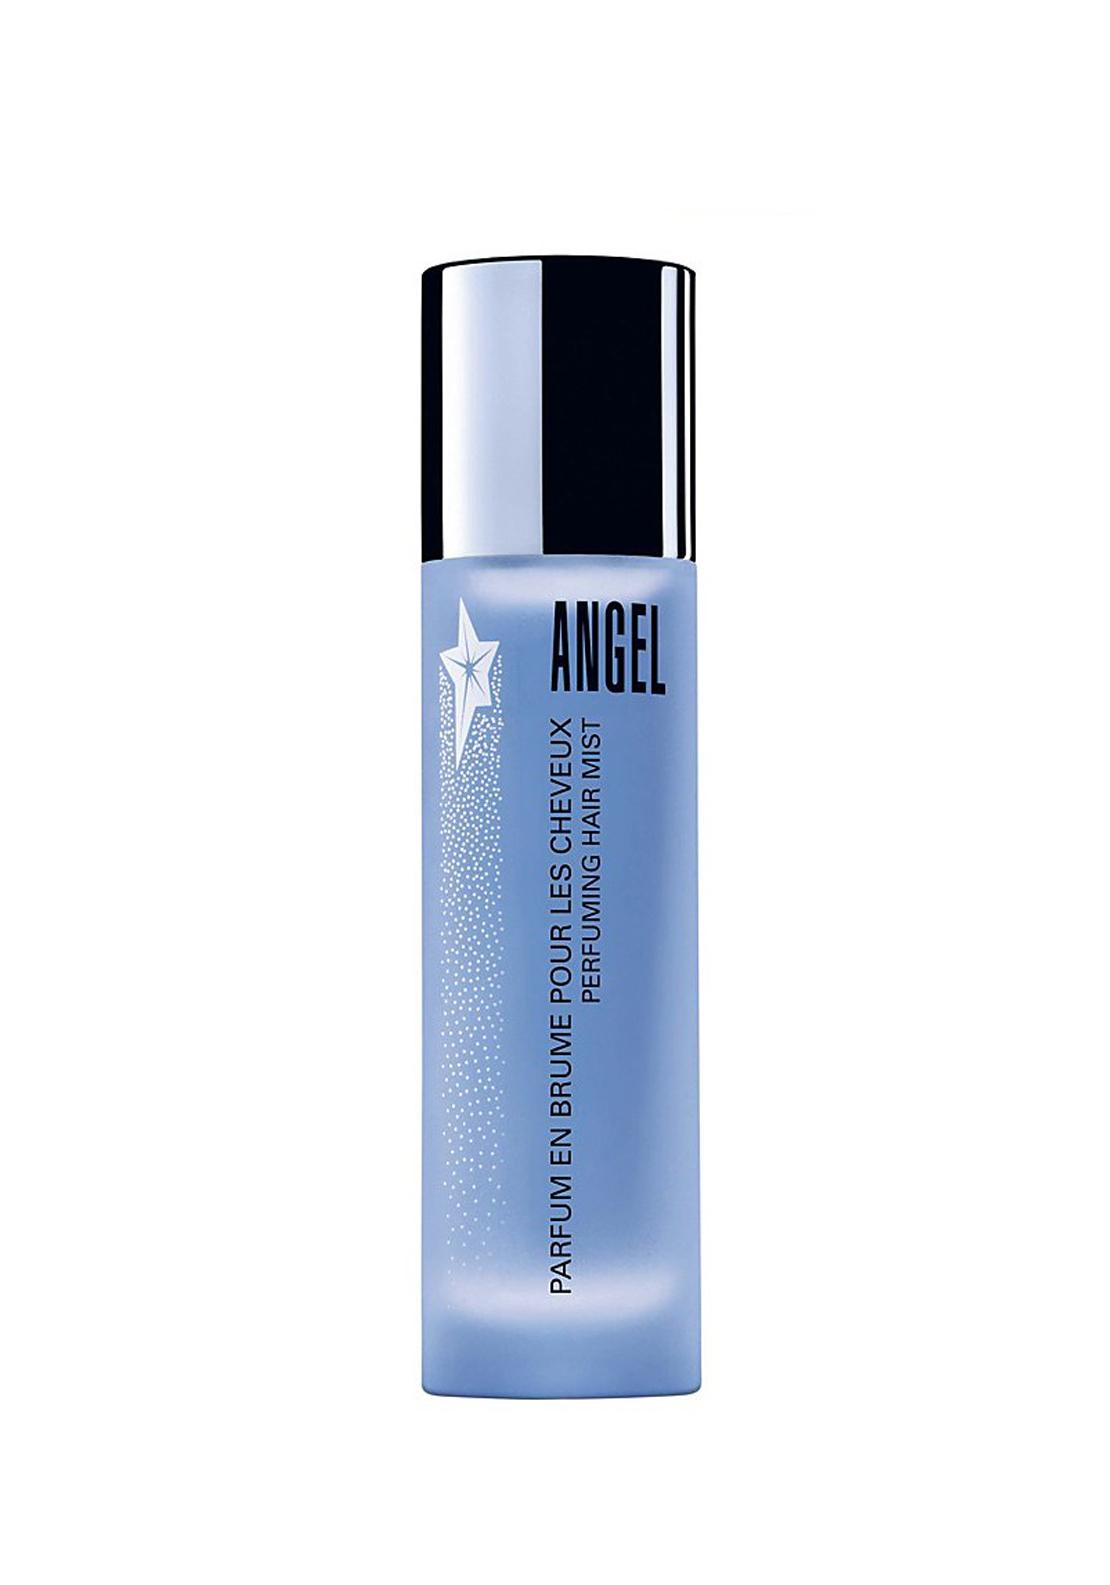 Thierry Mugler Angel Hair Mist, 30ml